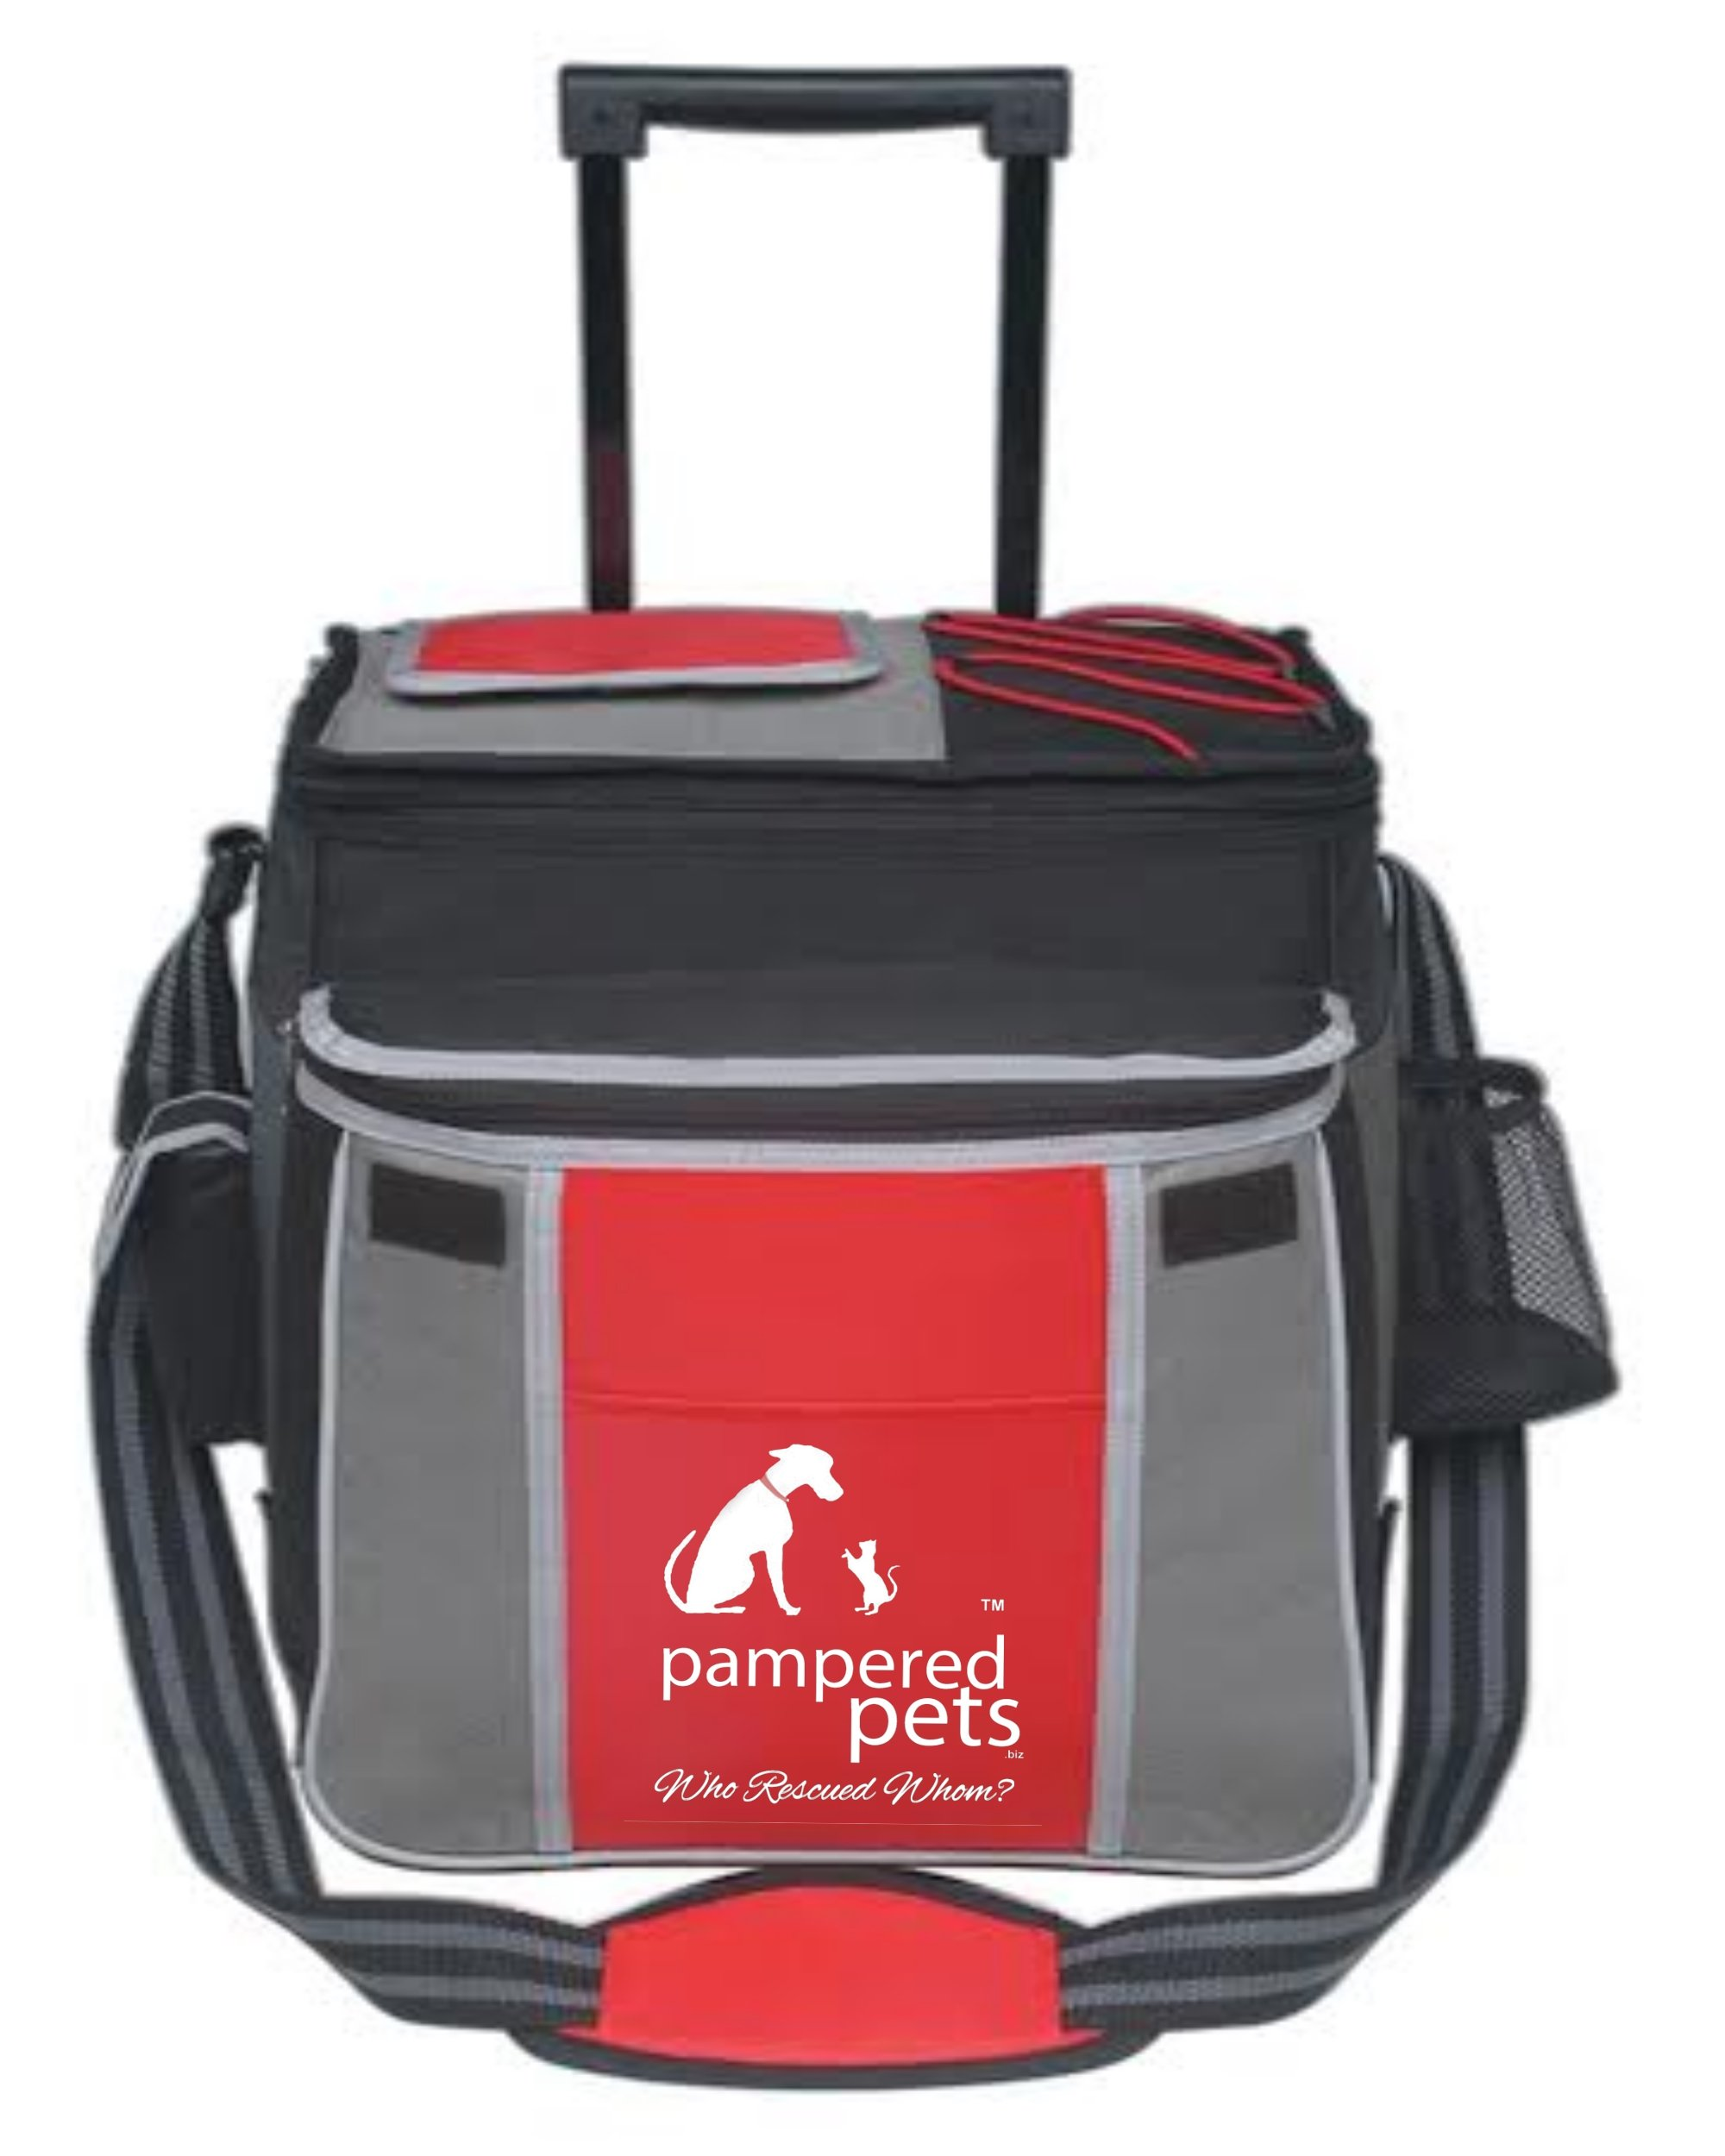 Pampered Pets ''Who Rescued Whom'' Flip Flap Rolling Cooler, Red